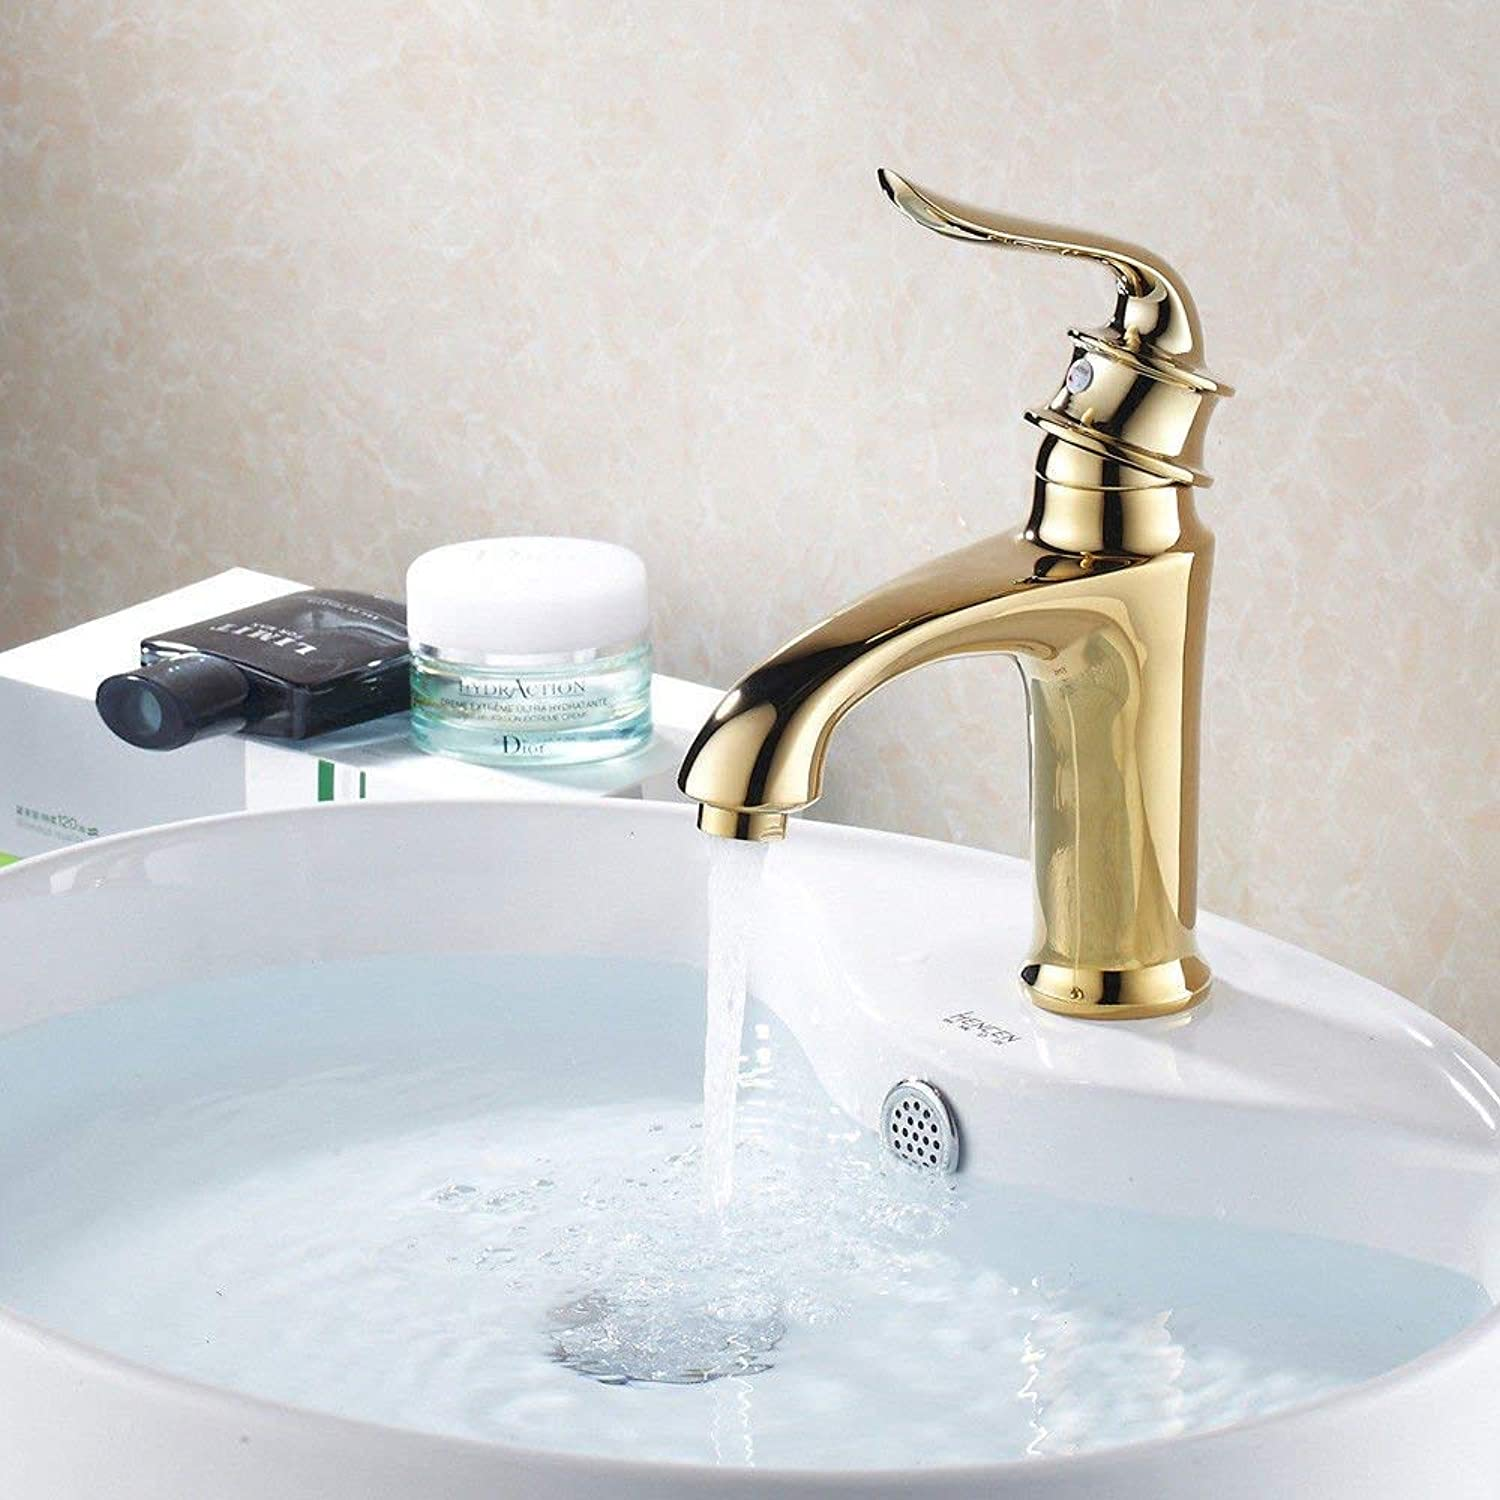 Oudan Bathroom Sink Basin Tap Brass Mixer Tap Washroom Mixer Faucet Basin cold water gold water Tsui-fitting retro-copper bathroom sink Faucet Kitchen Sink Taps